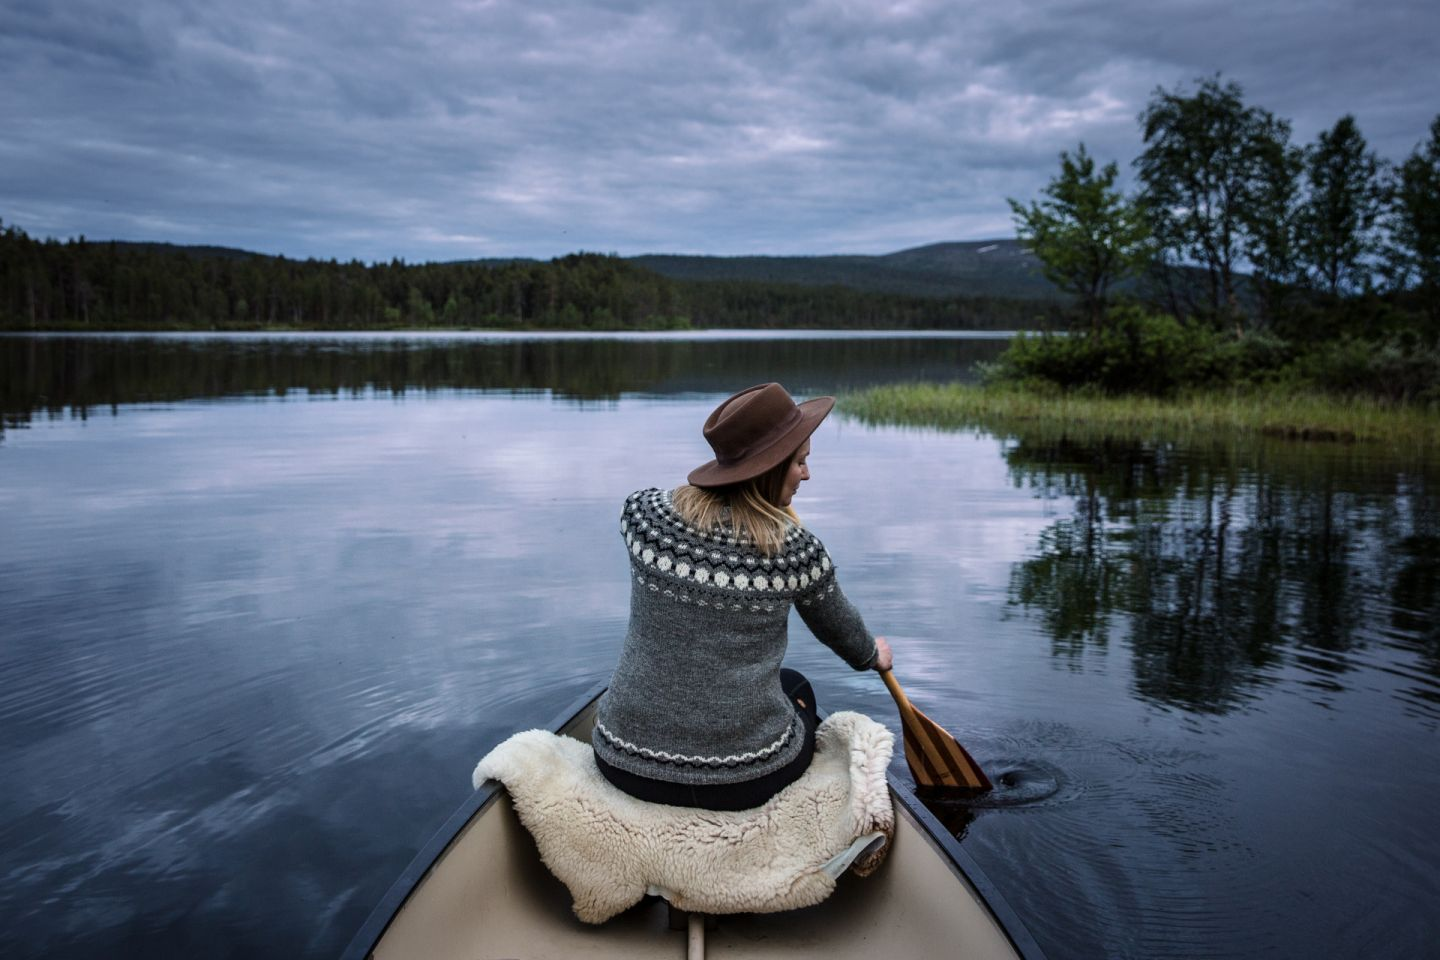 Canoeing in the calm waters of Finnish Lapland